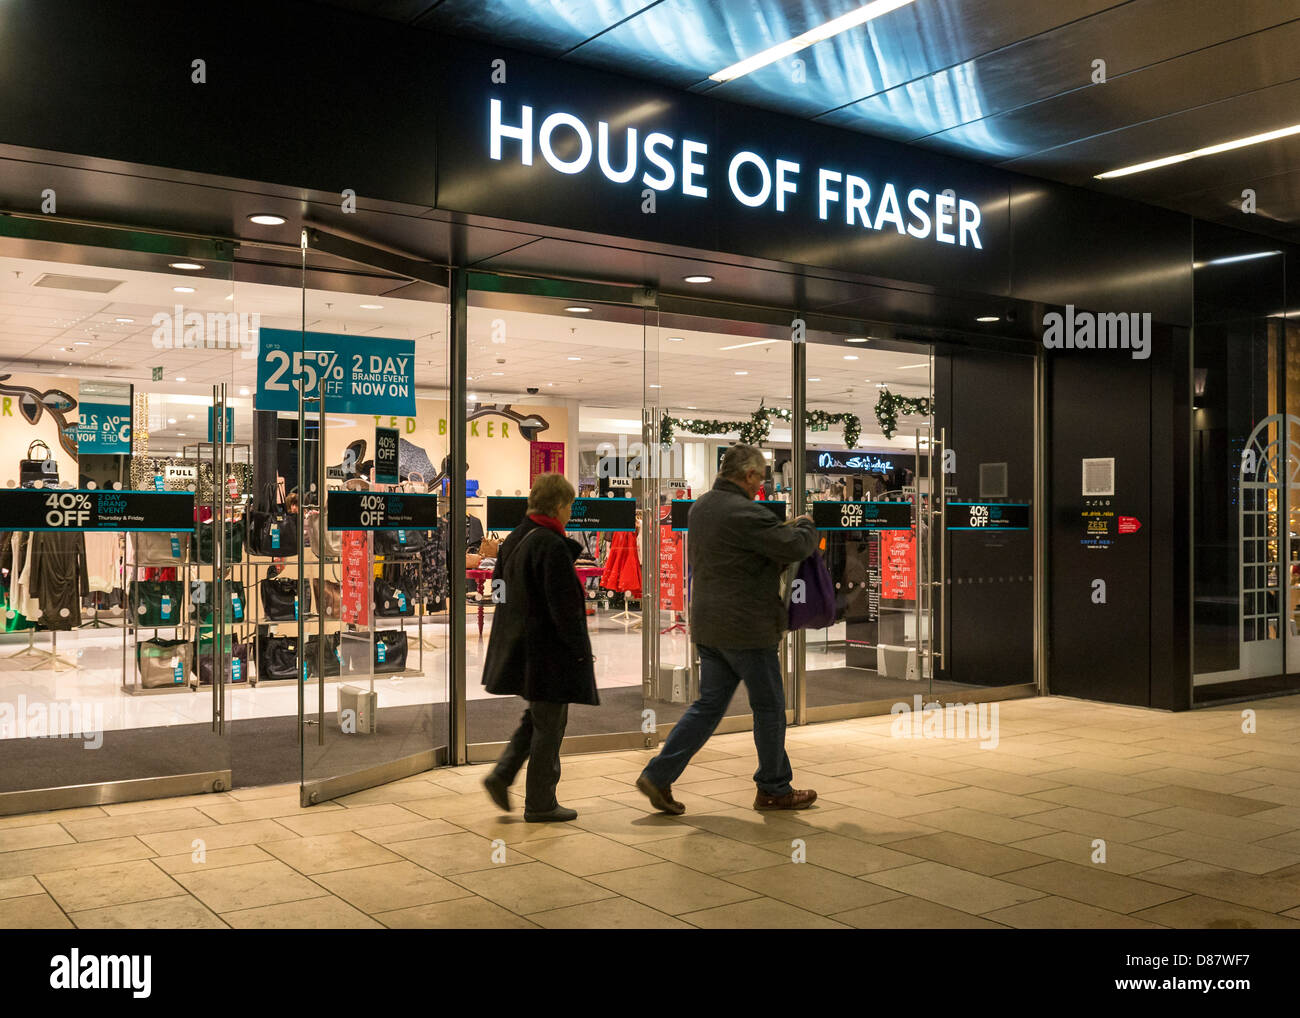 House of Fraser department store, England, UK - Stock Image